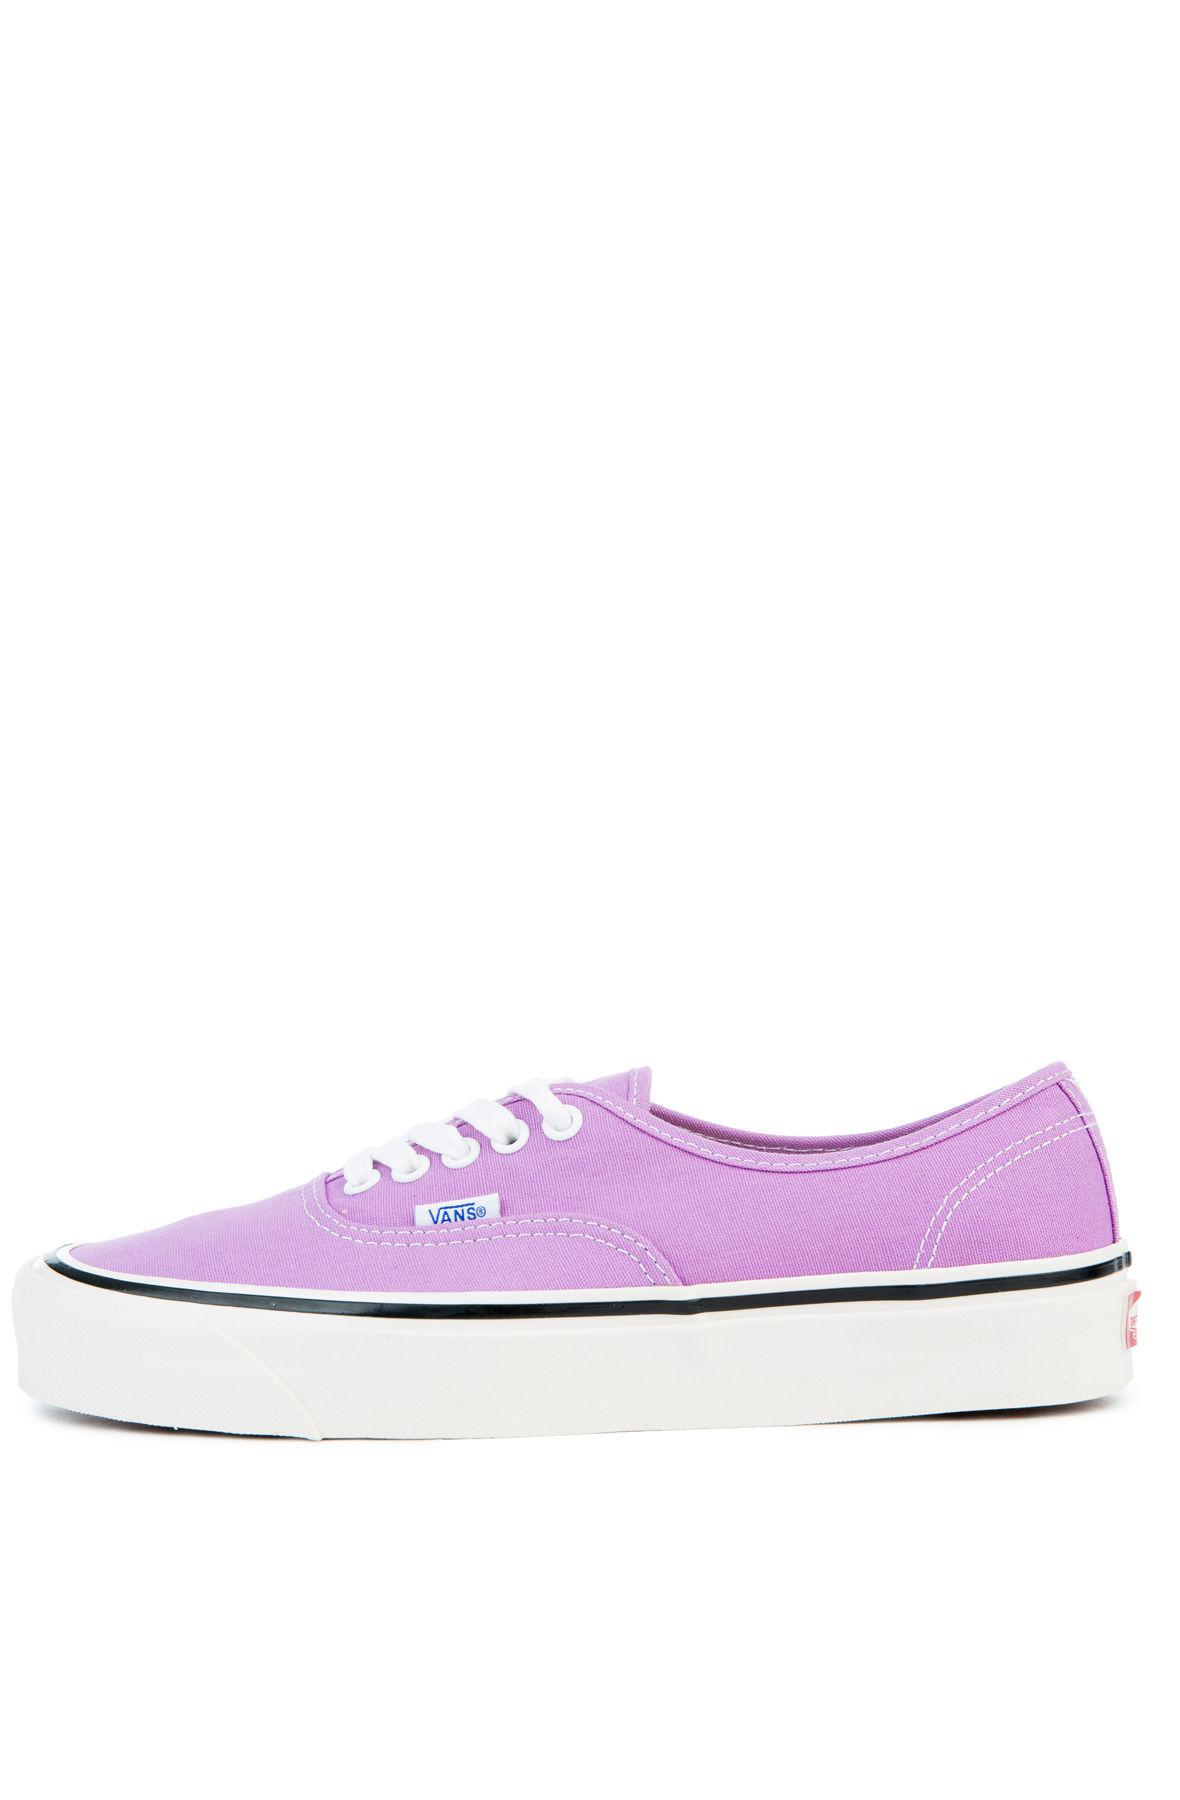 Fourgons Authentiques 44 Dx Chaussures Baskets Lo Violet Lilas Eb4YGl2